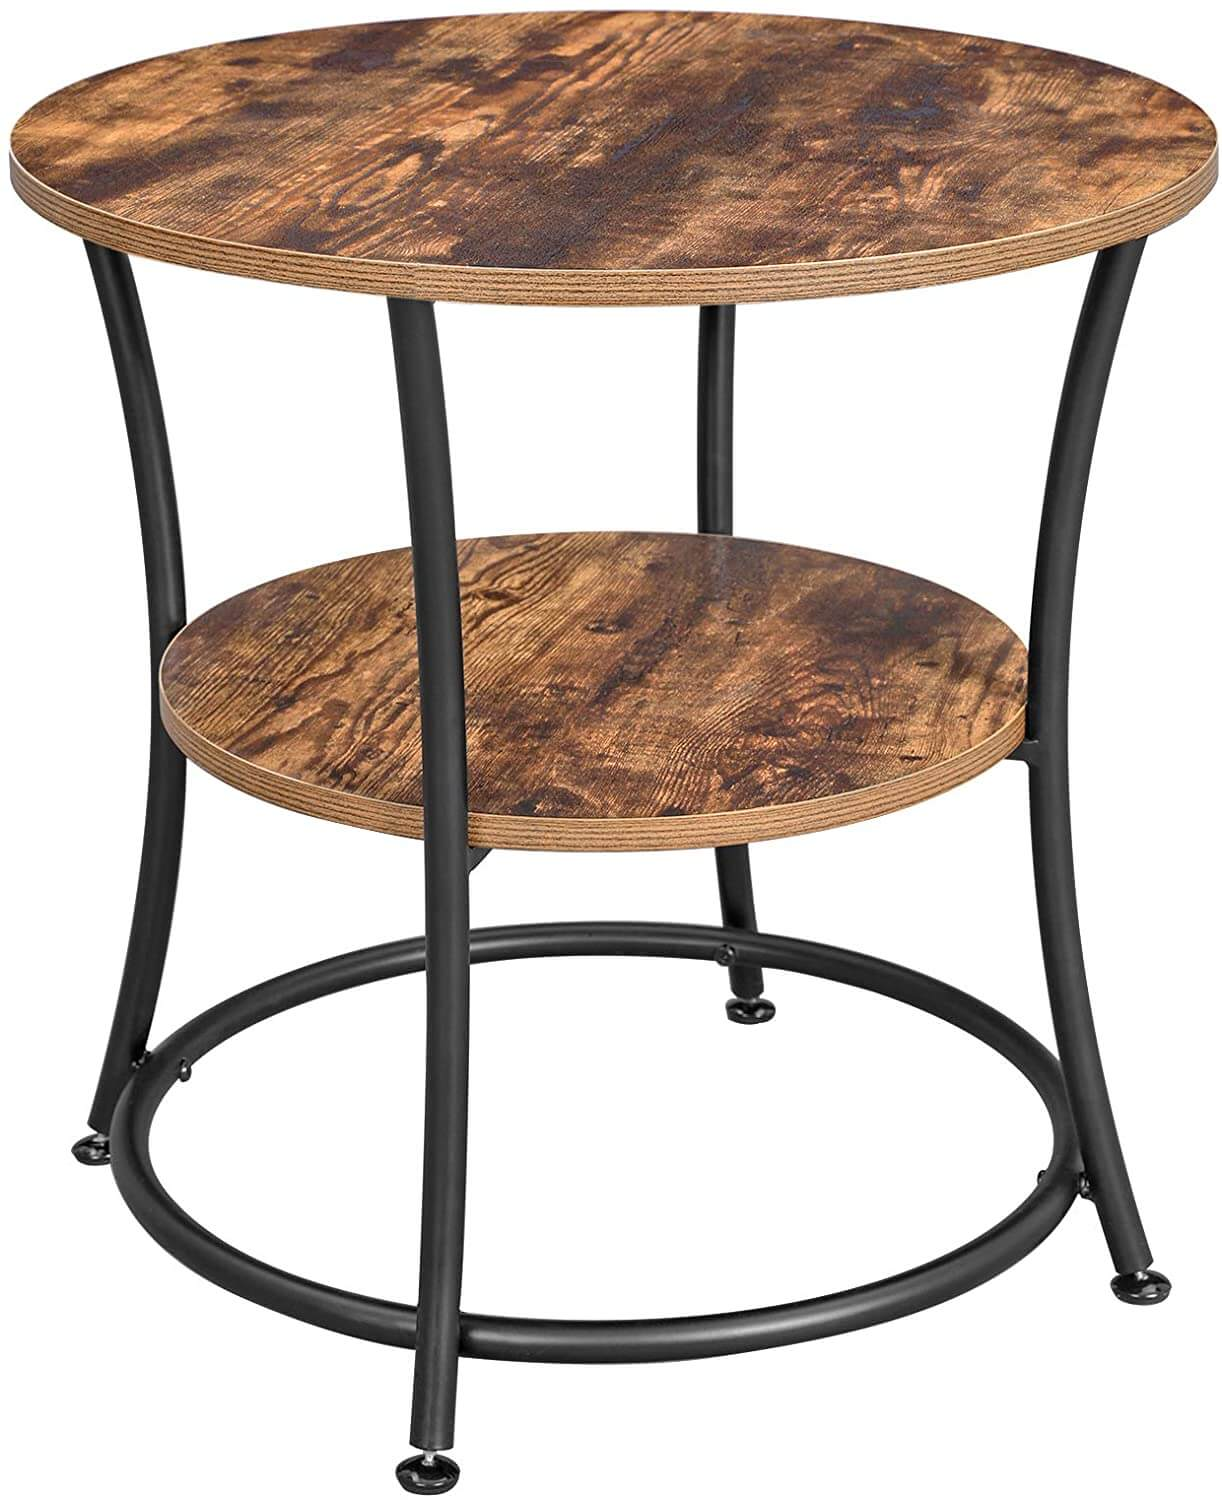 Enjoy fast, free nationwide shipping!  Owned by a husband and wife team of high-school music teachers, HawkinsWoodshop.com is your one stop shop for affordable furniture.  Shop HawkinsWoodshop.com for solid wood & metal modern, traditional, contemporary, industrial, custom, rustic, and farmhouse furniture including our Ryan 2 Tier Round End Table.